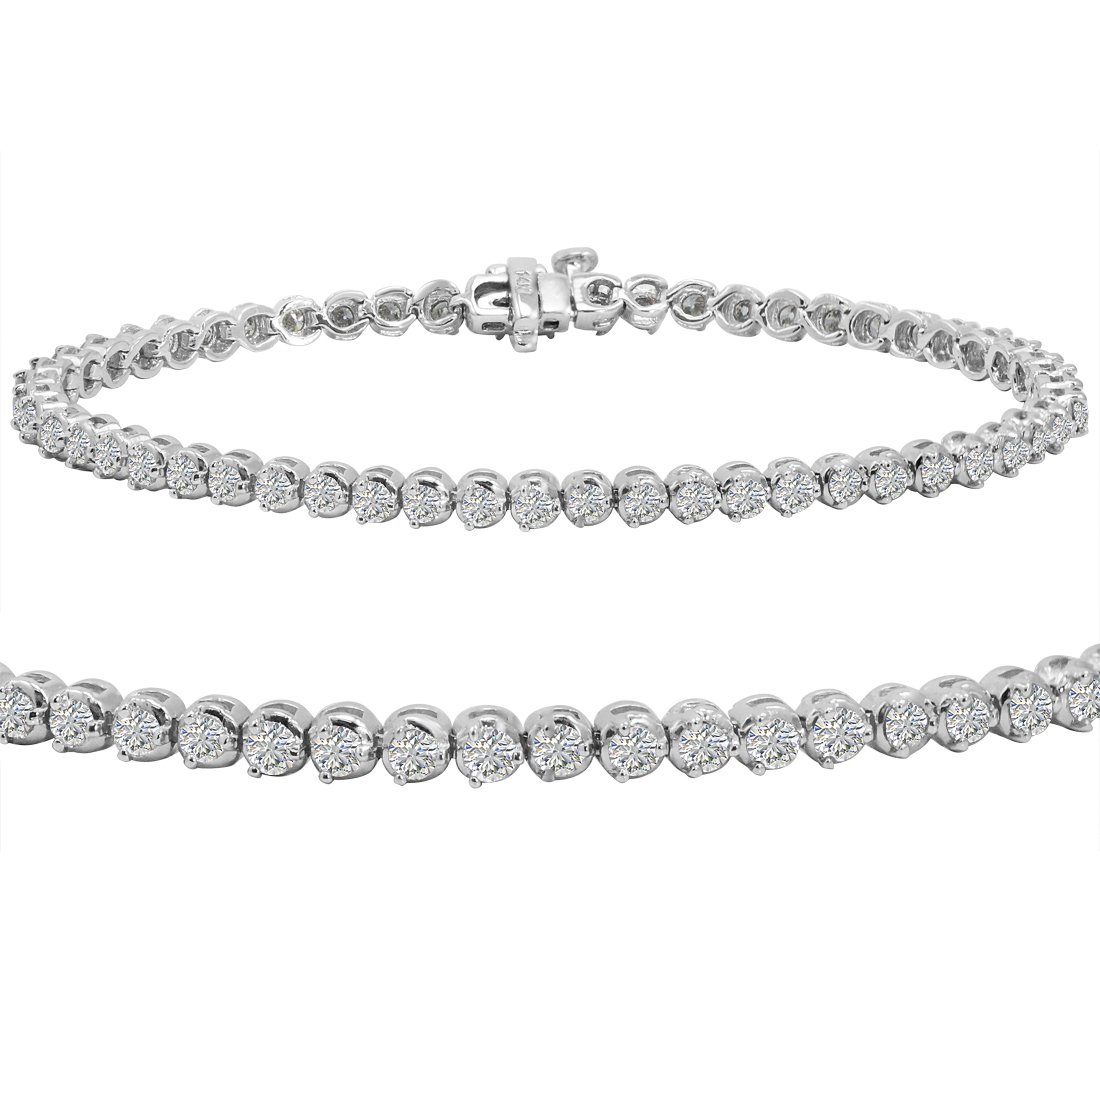 AGS Certified 3ct tw Diamond Tennis Bracelet in 14K White Gold 7 inch by Amanda Rose Collection (Image #1)